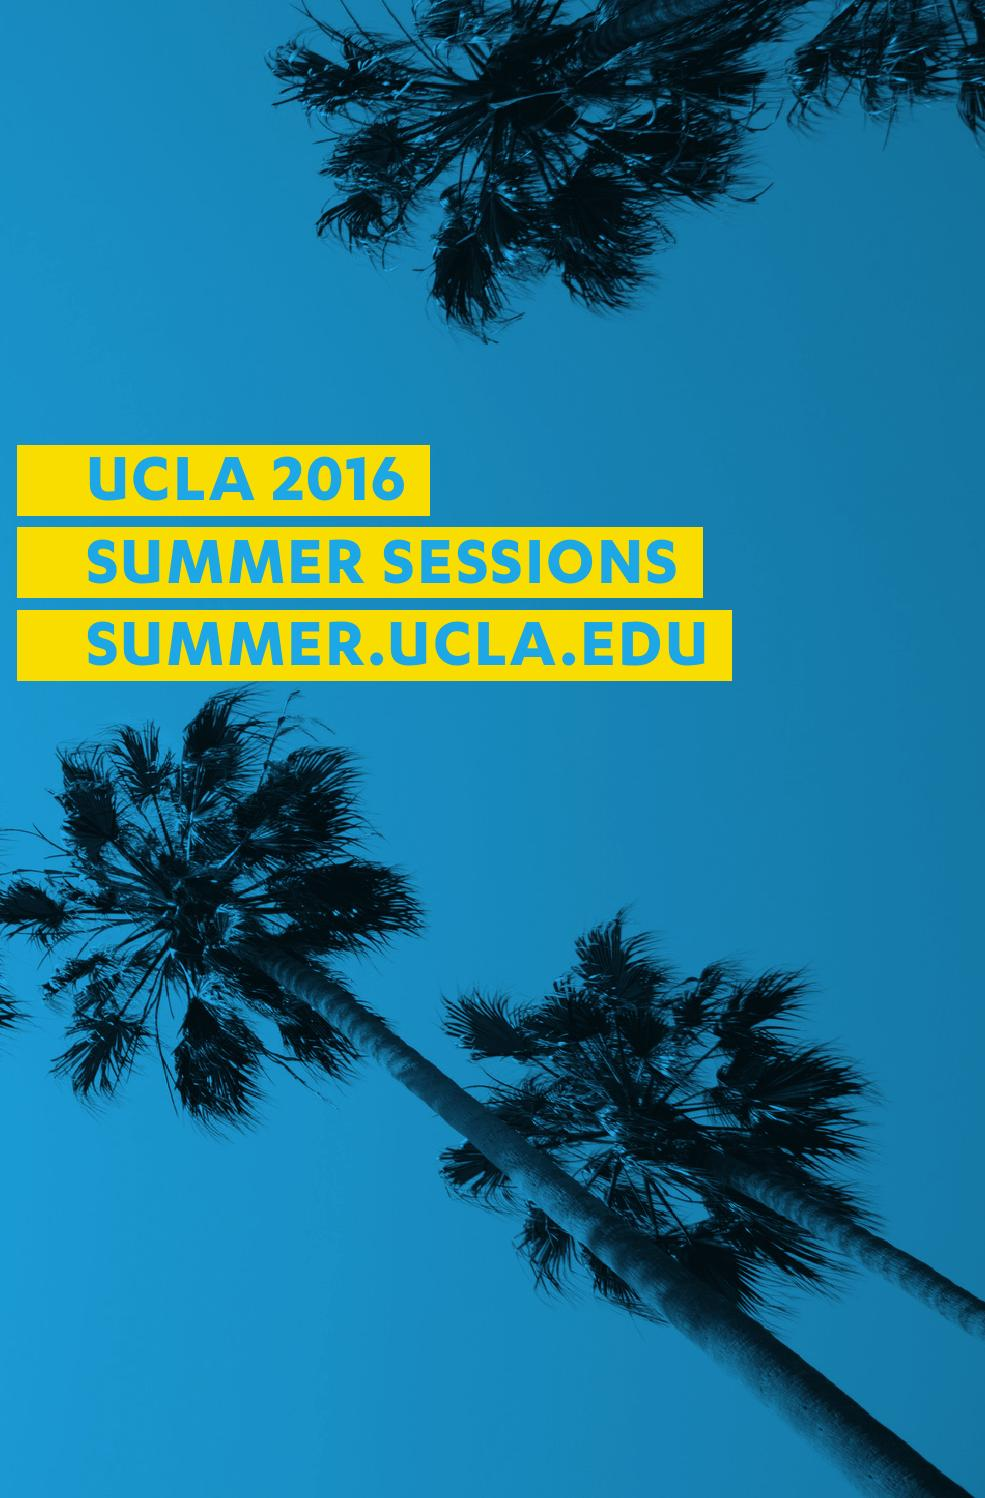 International Visiting Student | UCLA Summer Sessions